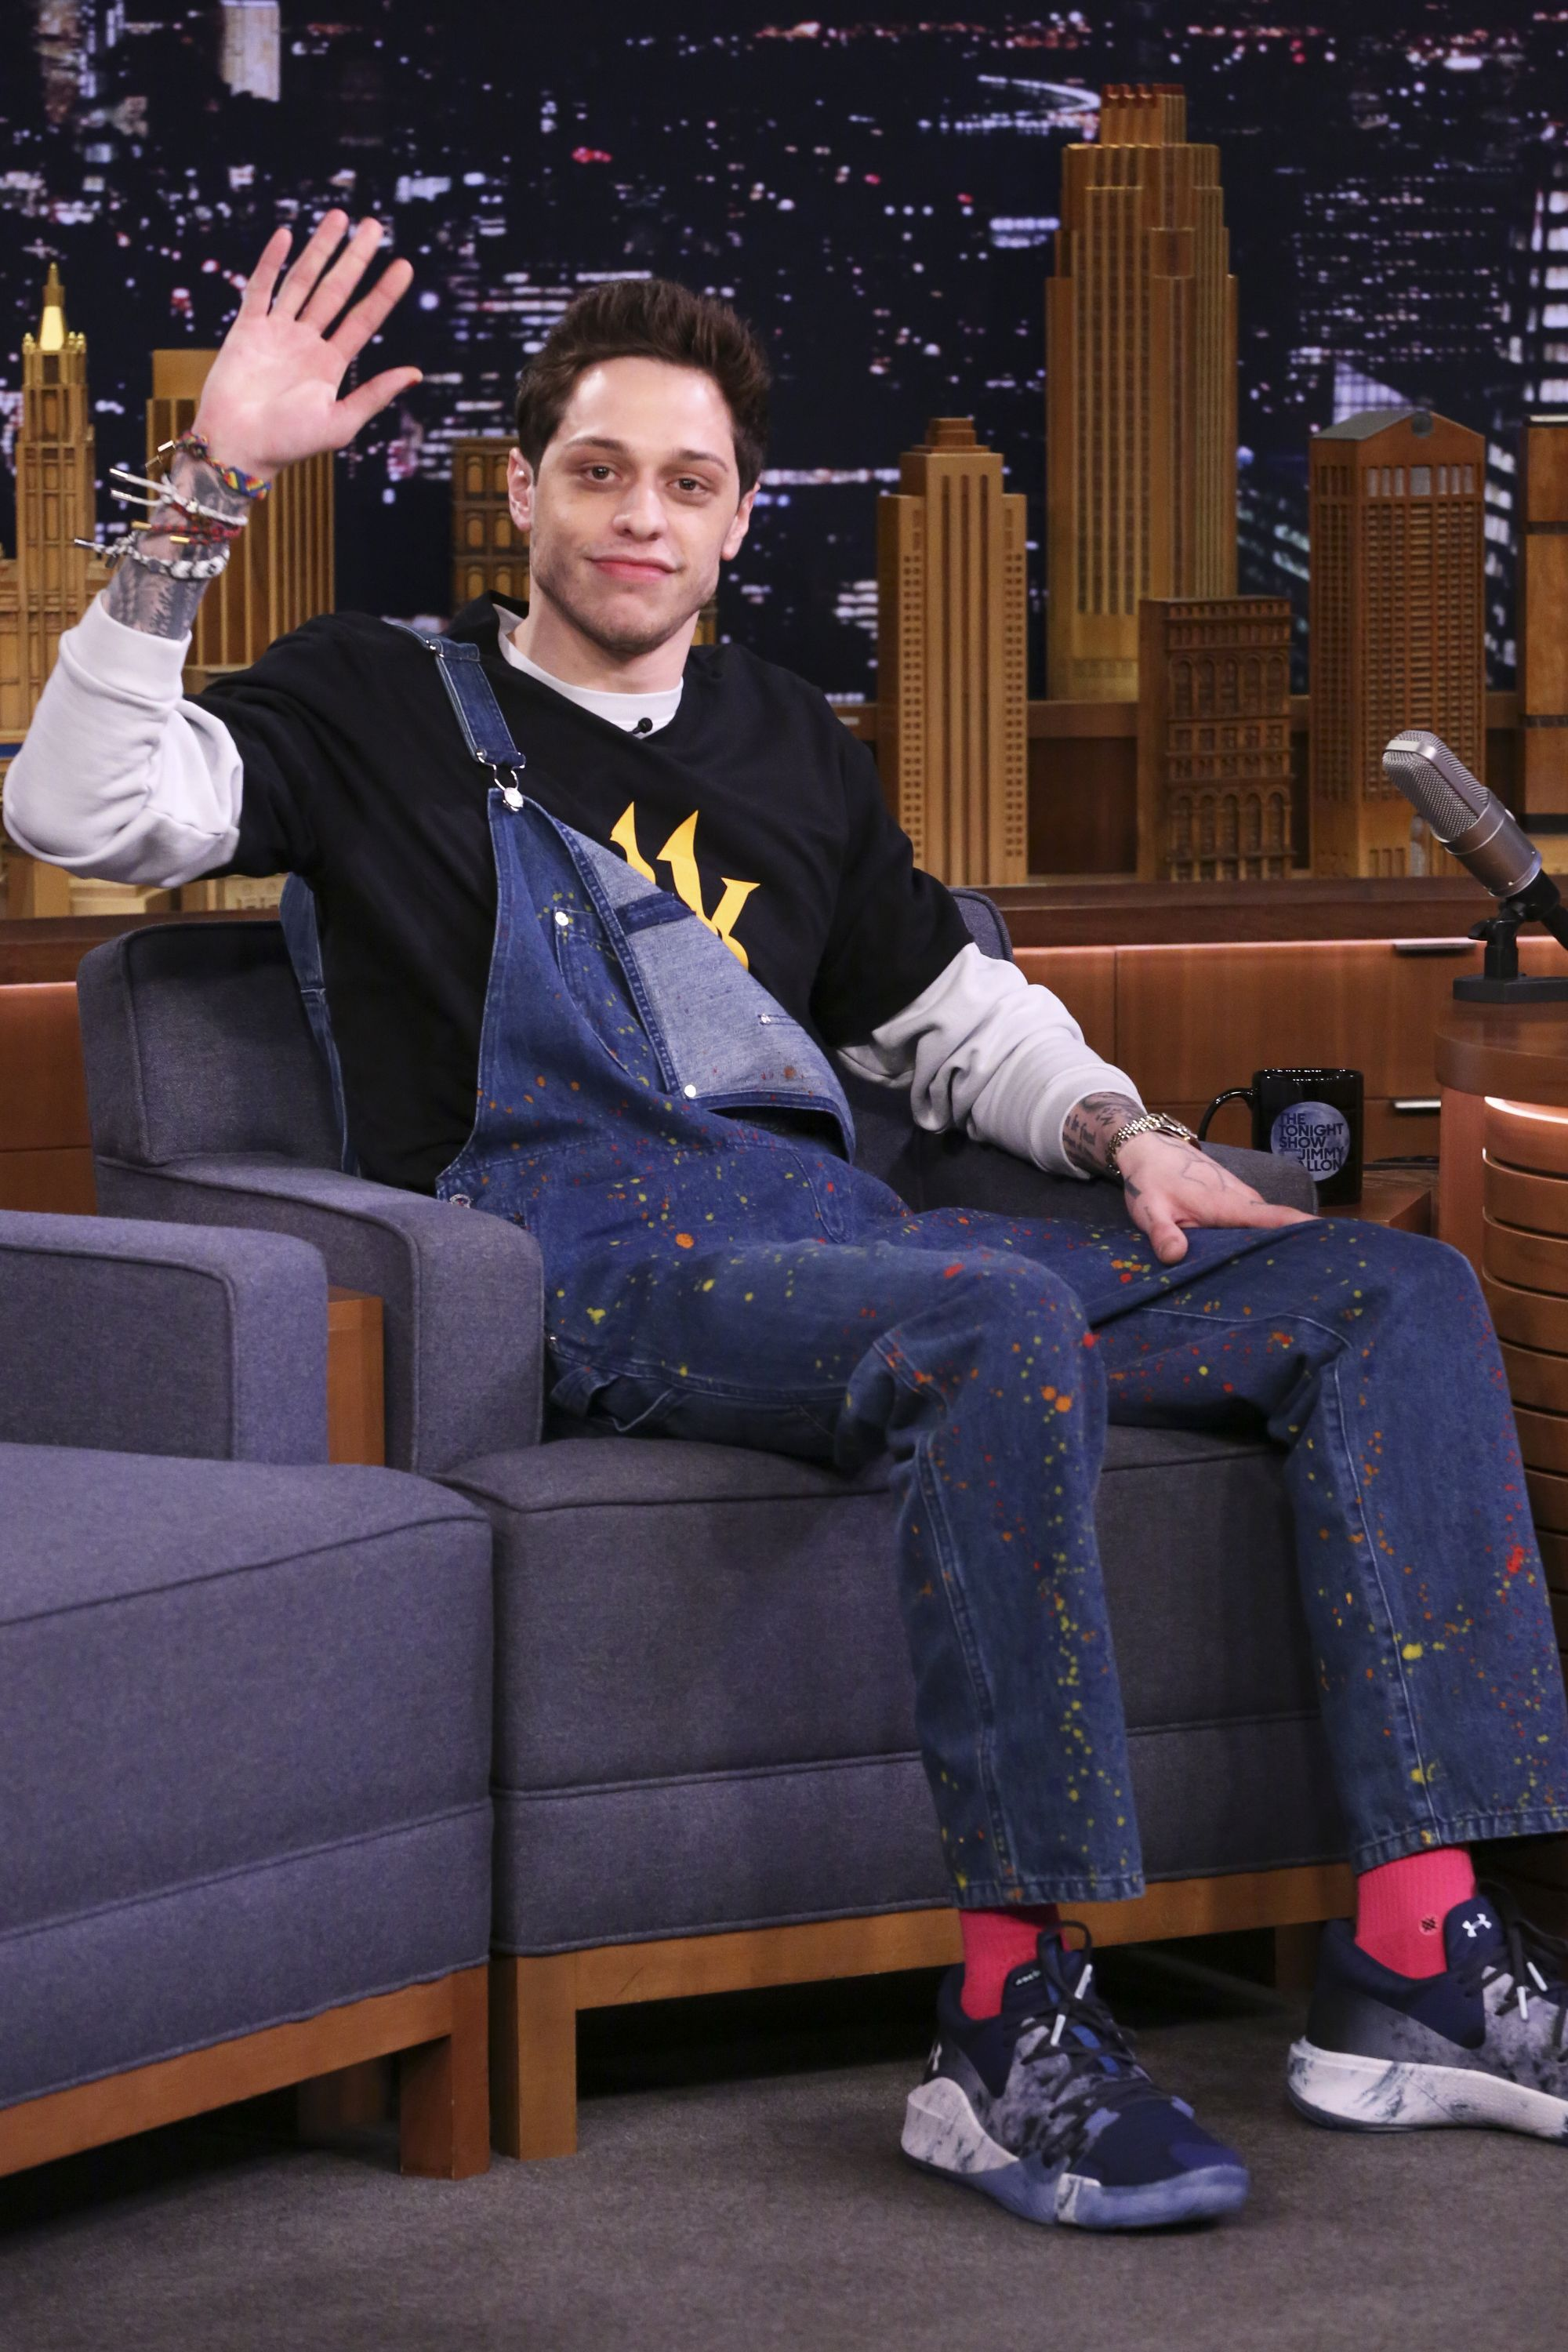 Pete Davidson Just Joked About Having Sex With His Mom and I Don't Know What to Do With This Information